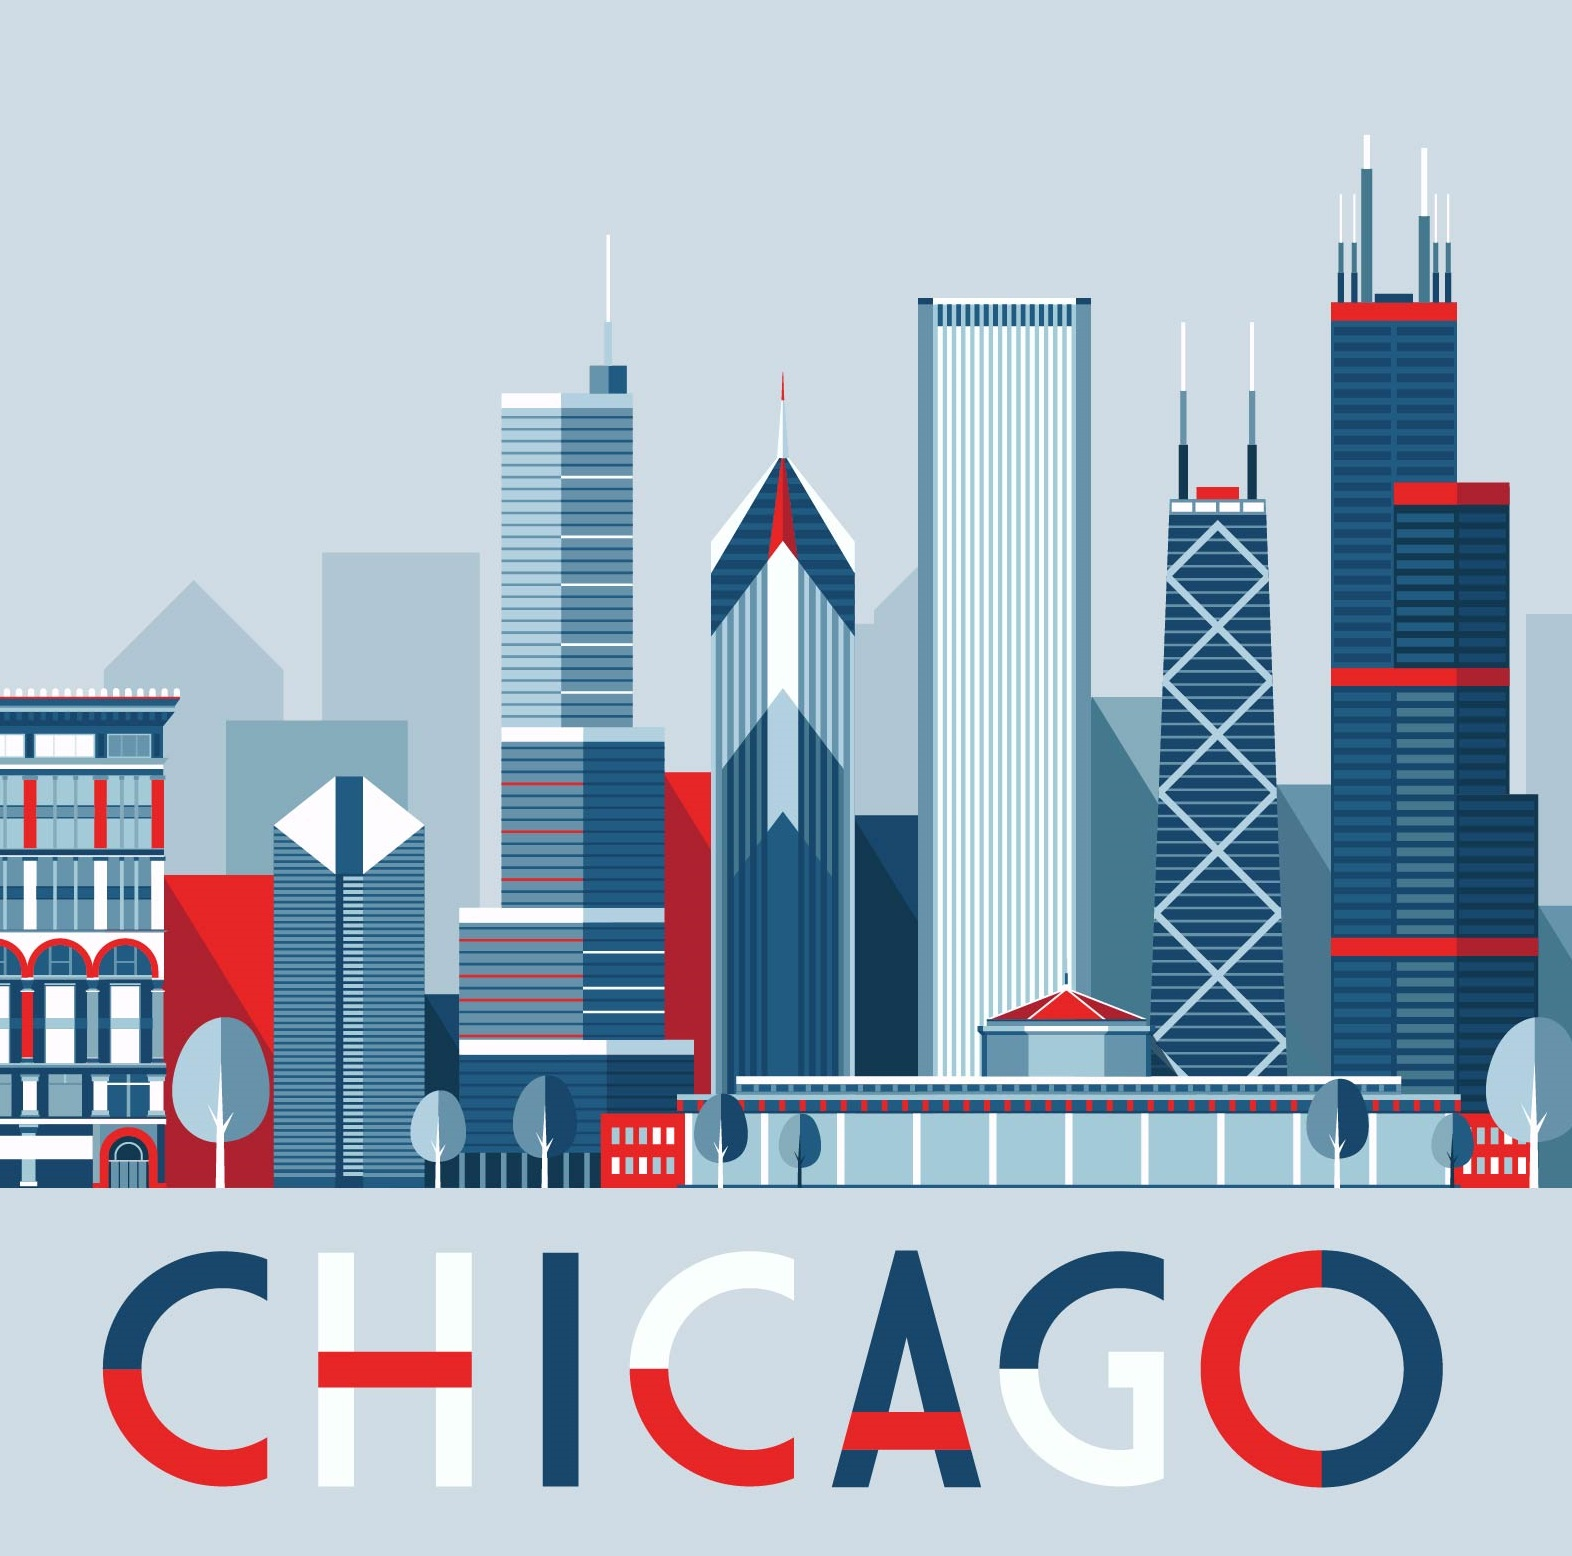 Chicago Regulatory Visit 09/19-09/21/18